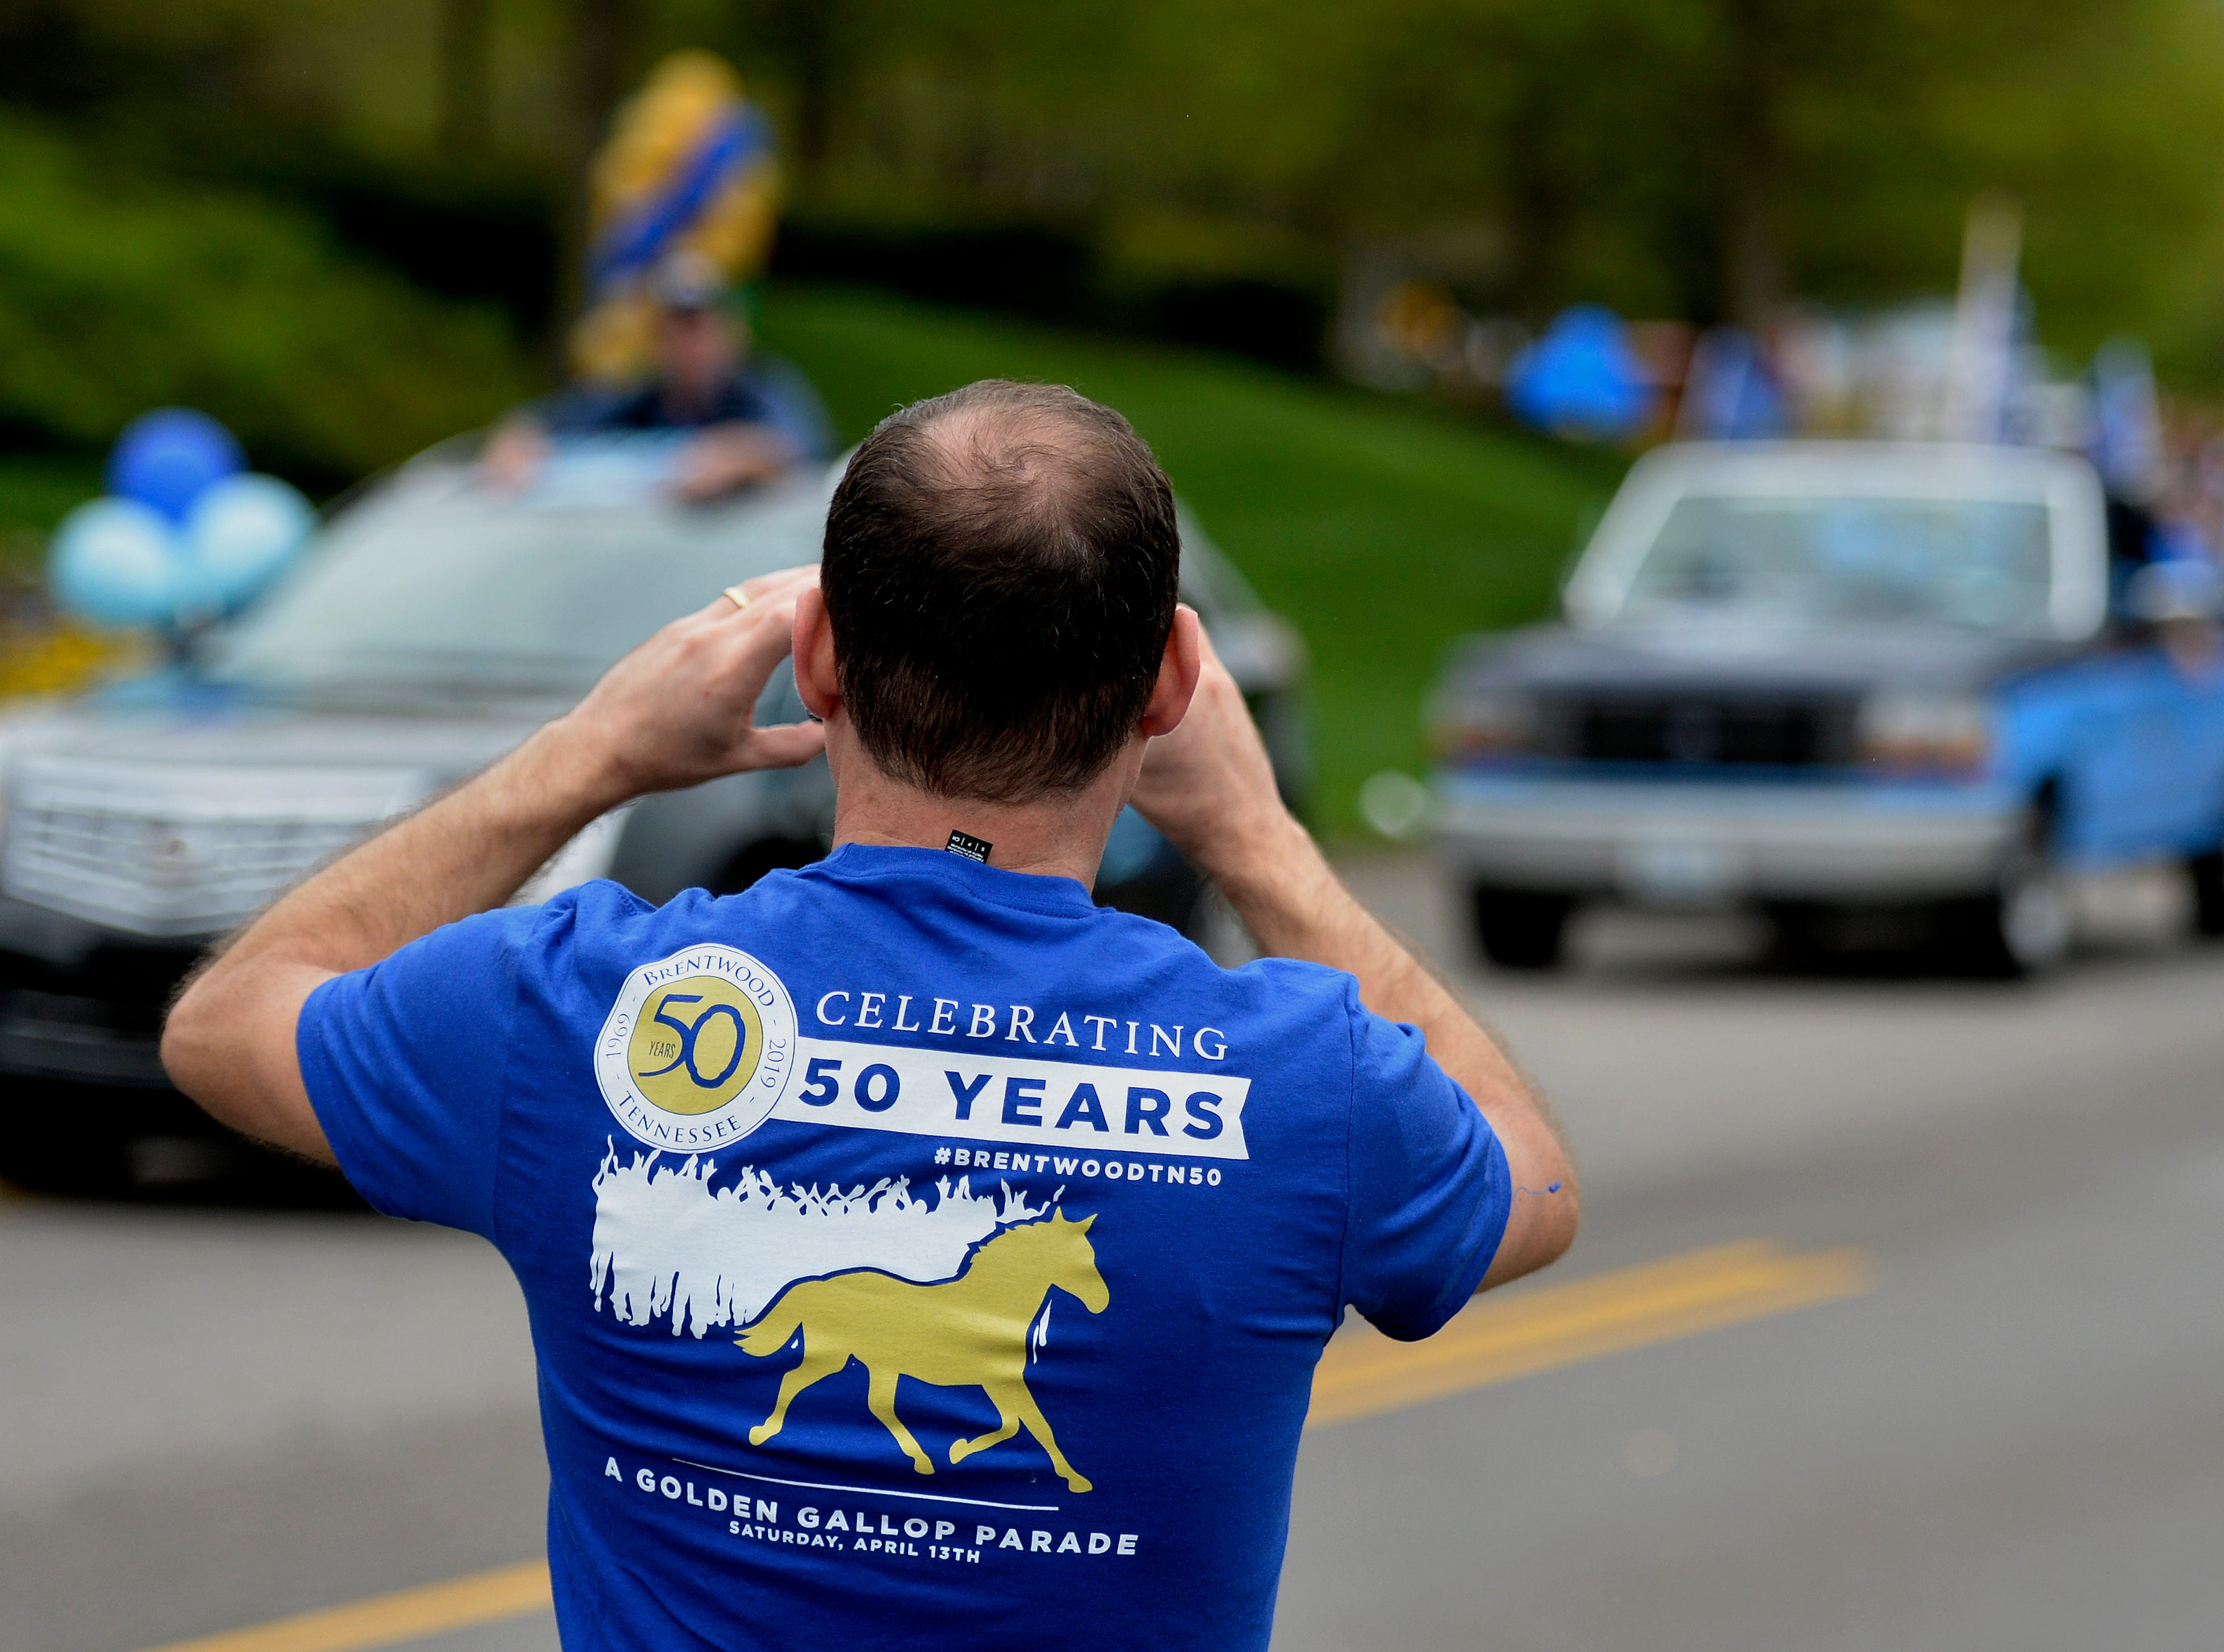 """A man takes photographs during Brentwood's """"A Golden Gallop"""" parade celebrating its 50th year as a community on Saturday, April 13, 2019, in Brentwood, Tenn."""